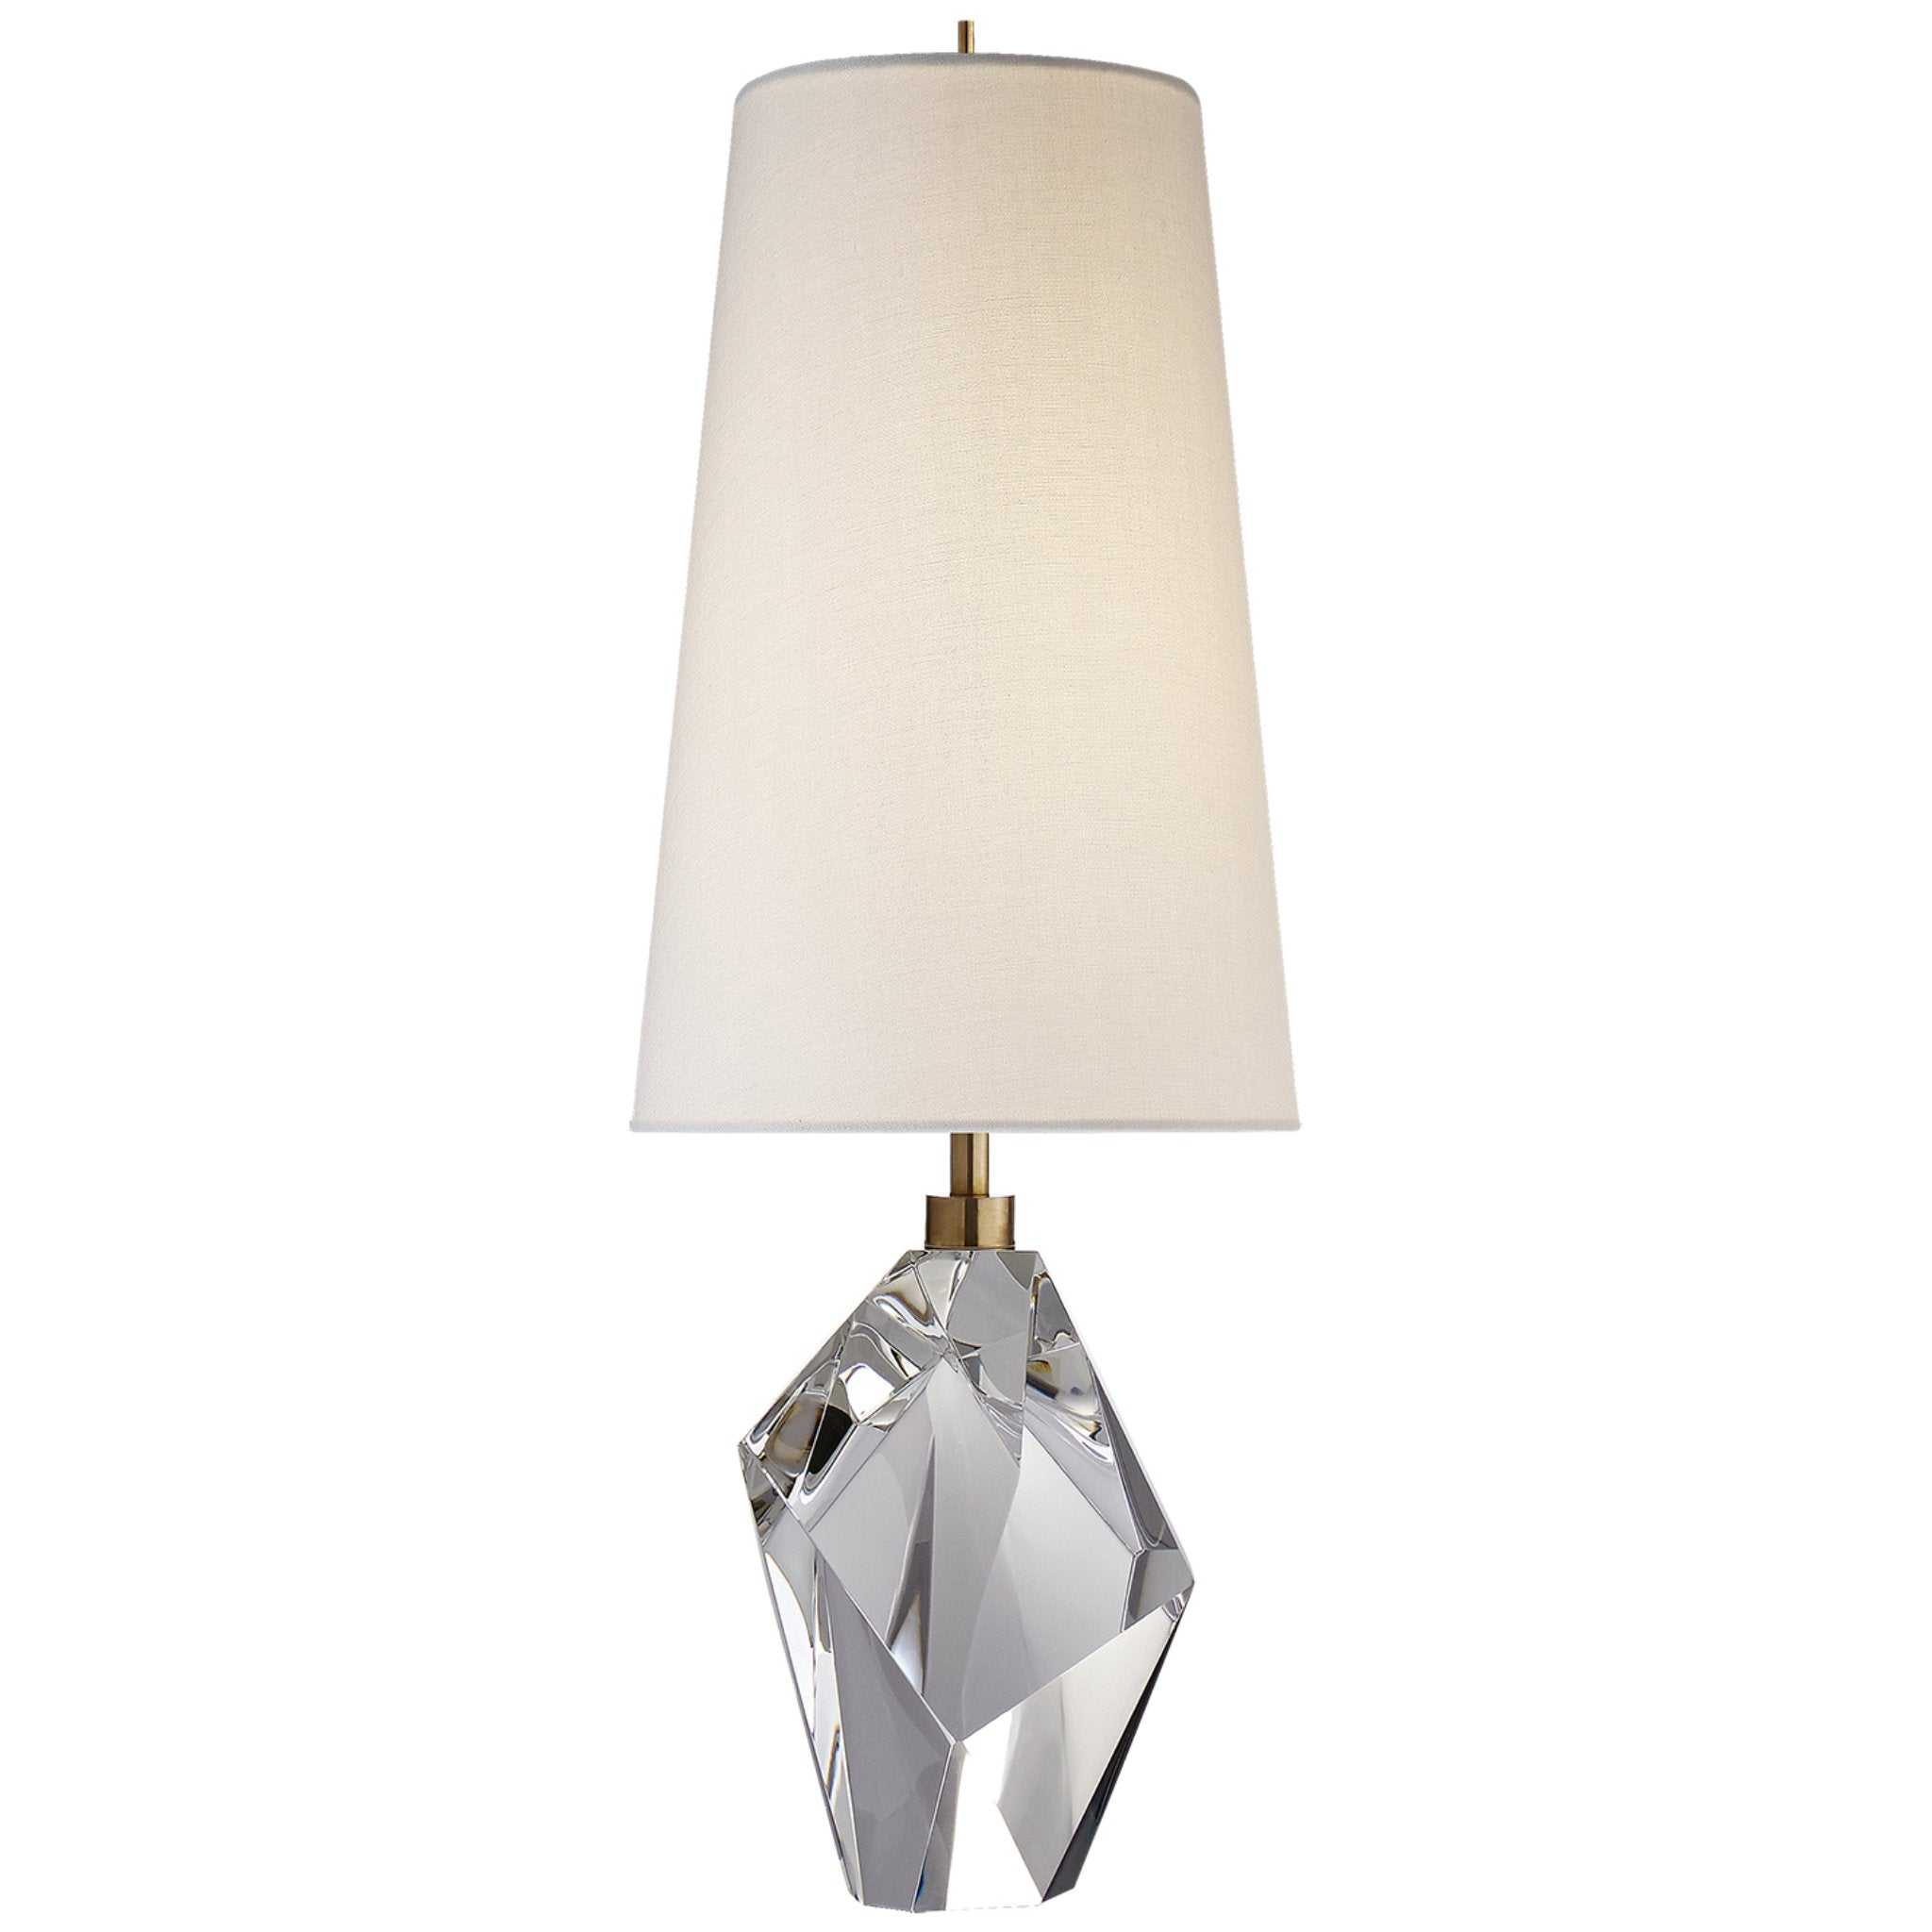 Visual Comfort Kw 3012cg L Kelly Wearstler Halcyon Accent Table Lamp I Foundry Lighting